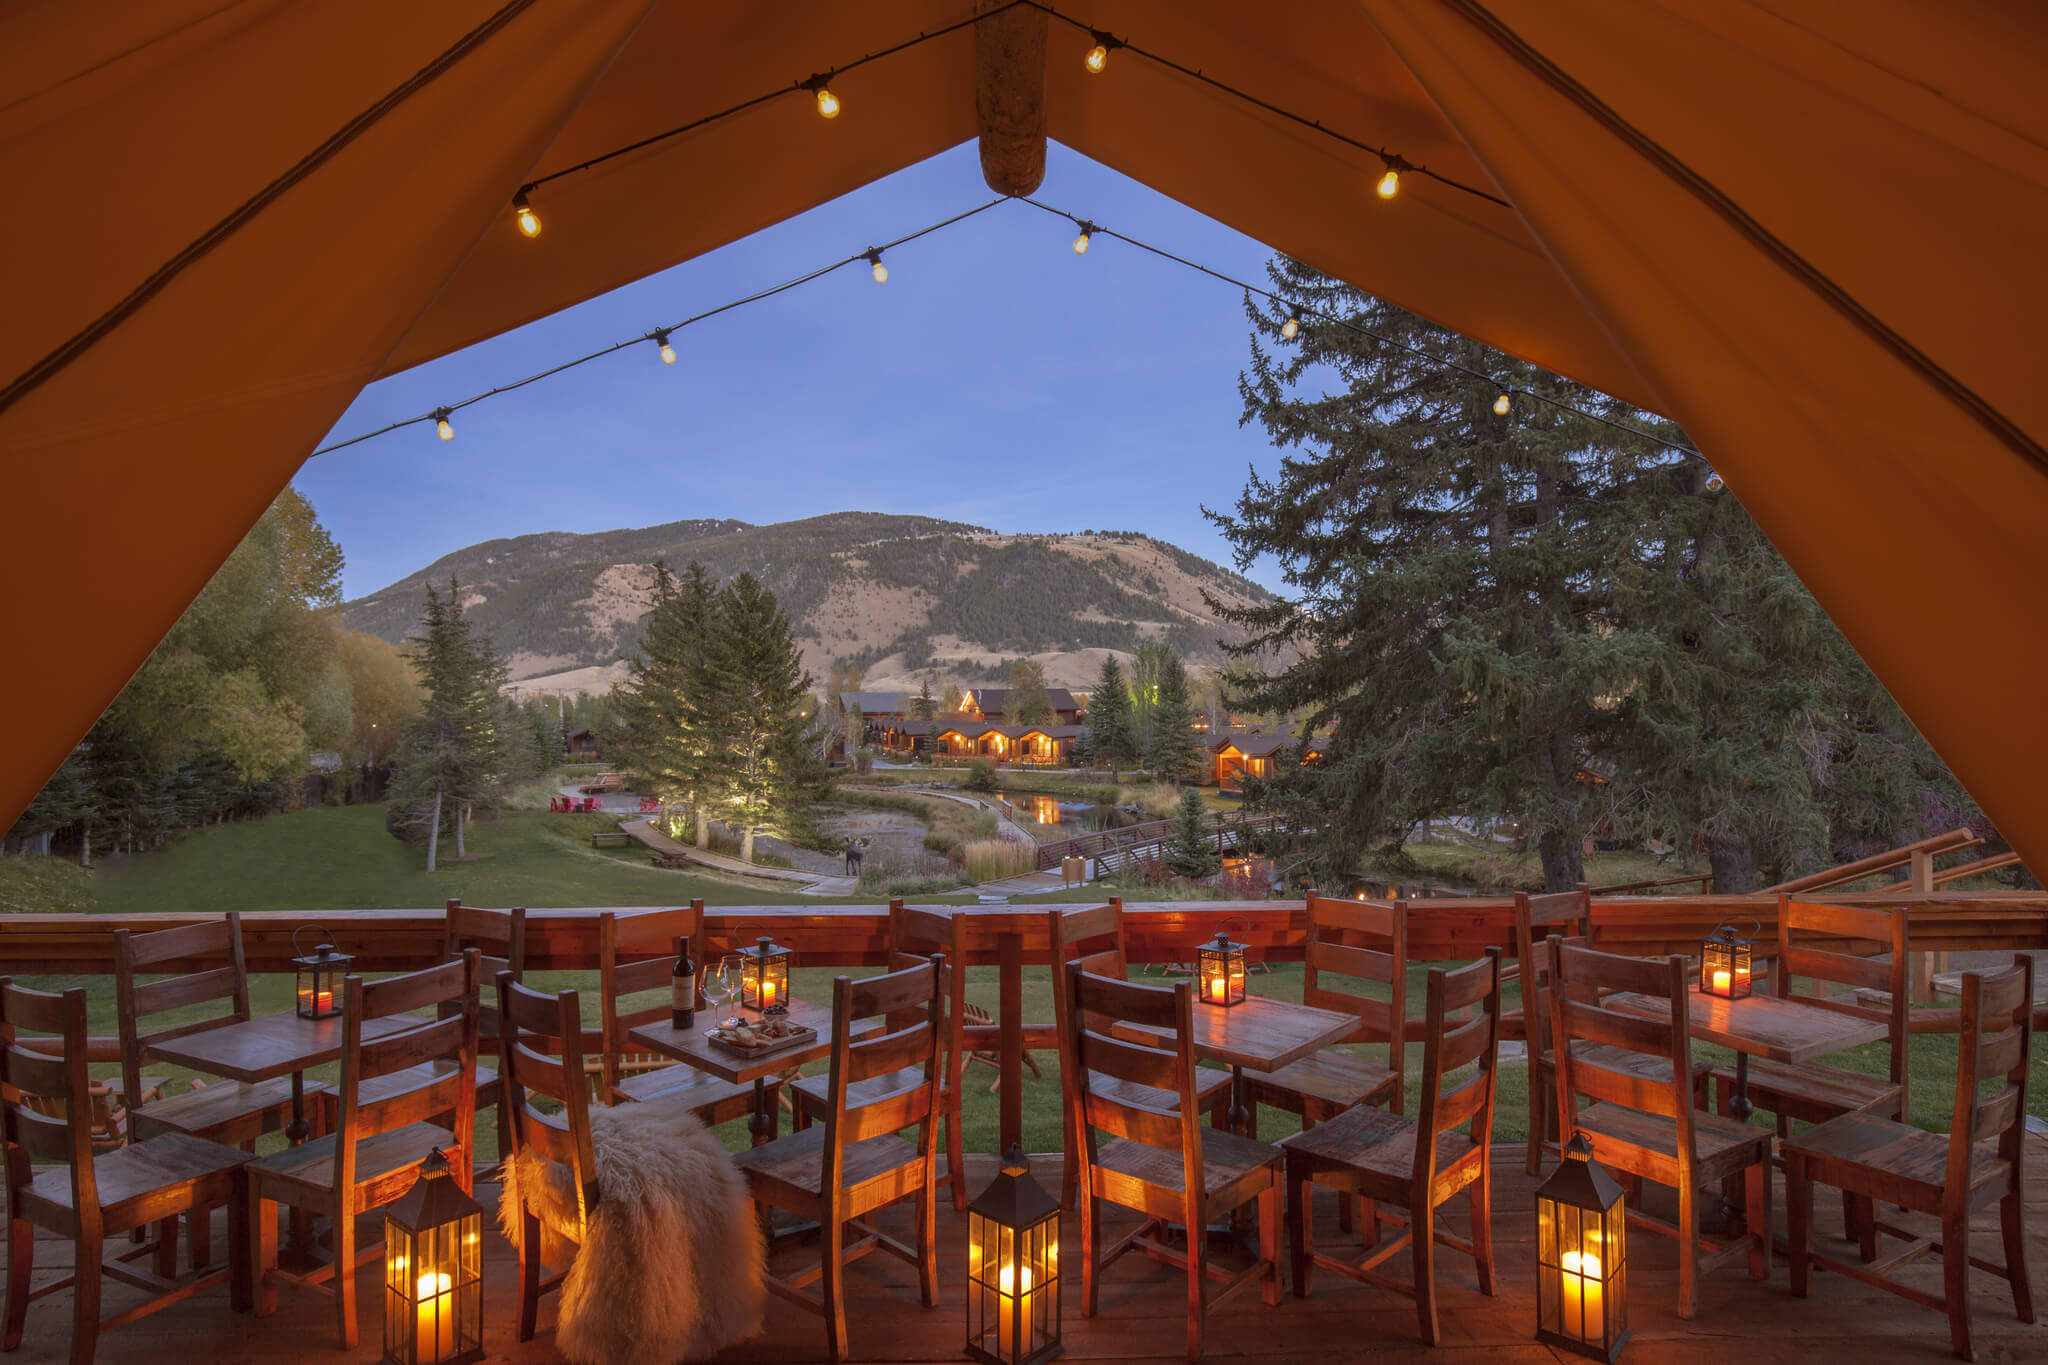 wooden tables under a canvas tent outside with lantern lights on them overlooking Rustic Inn